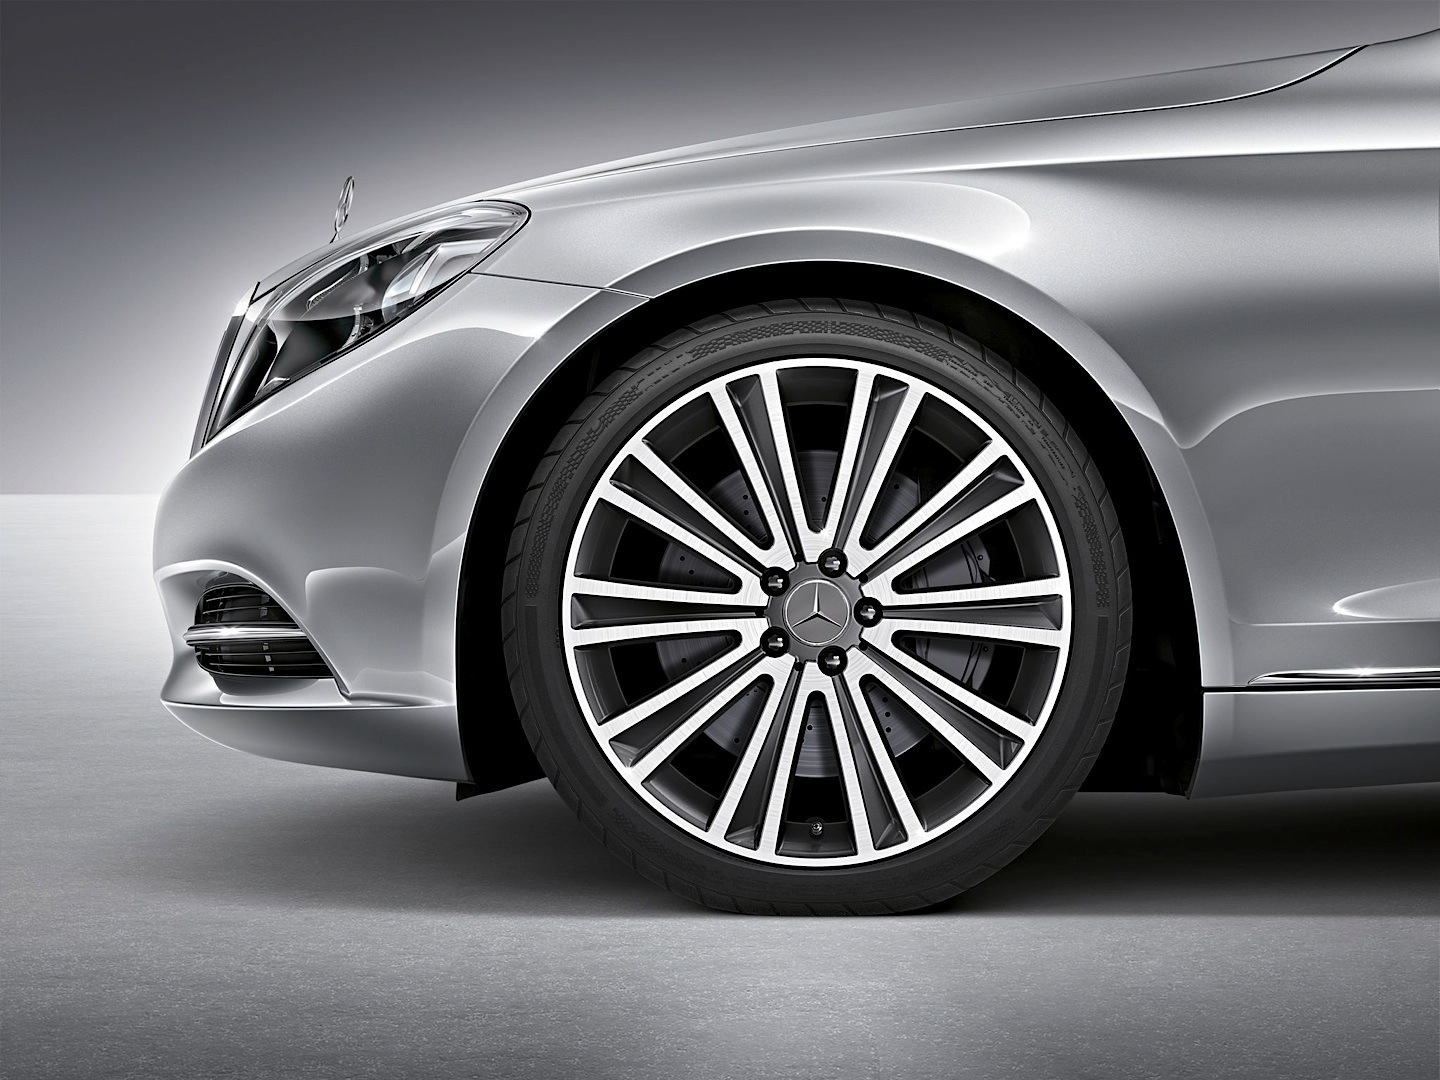 w222 s class gets two new 19 and 20 inch wheel designs